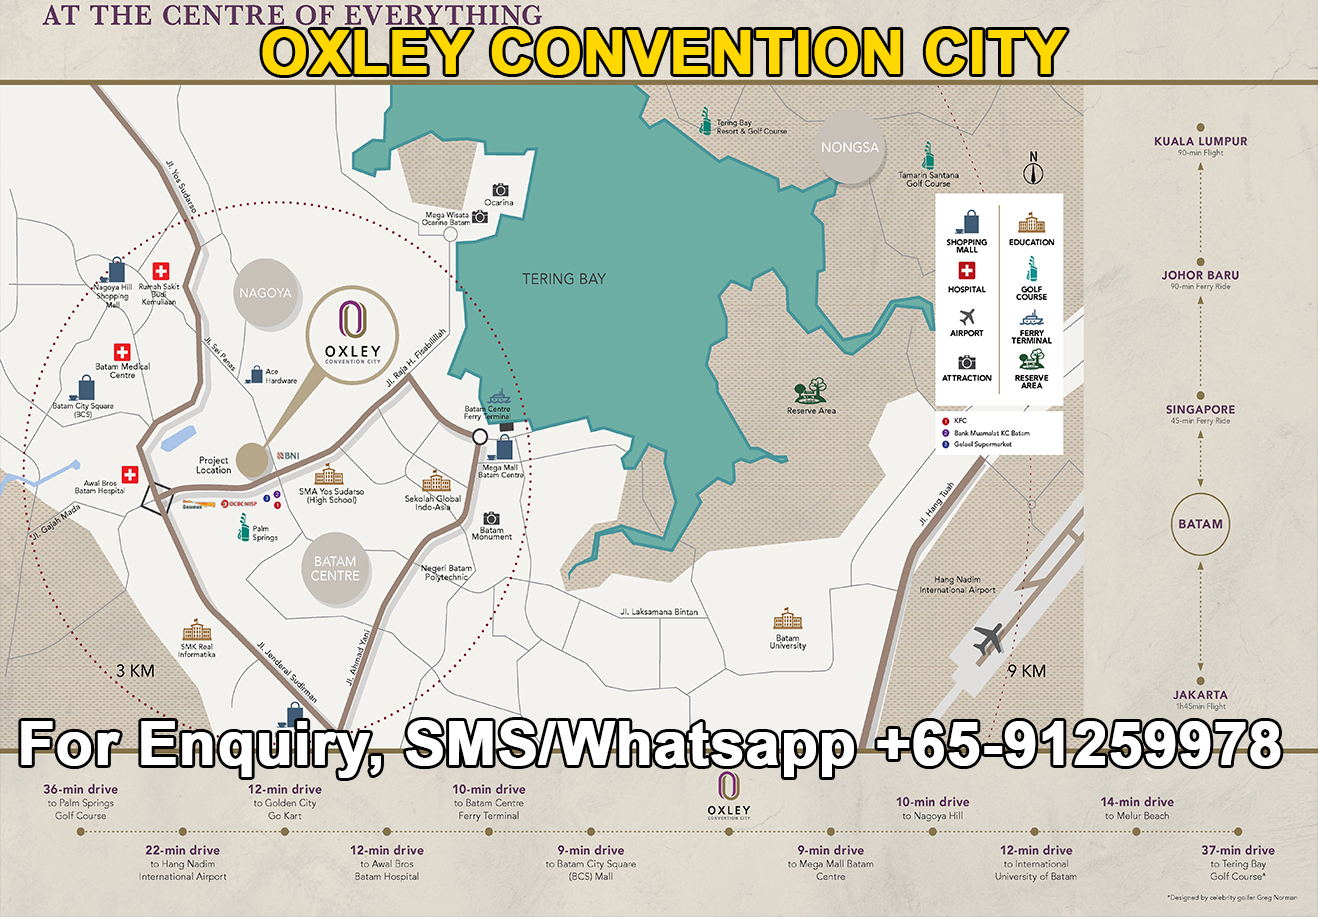 Oxley Convention City Location